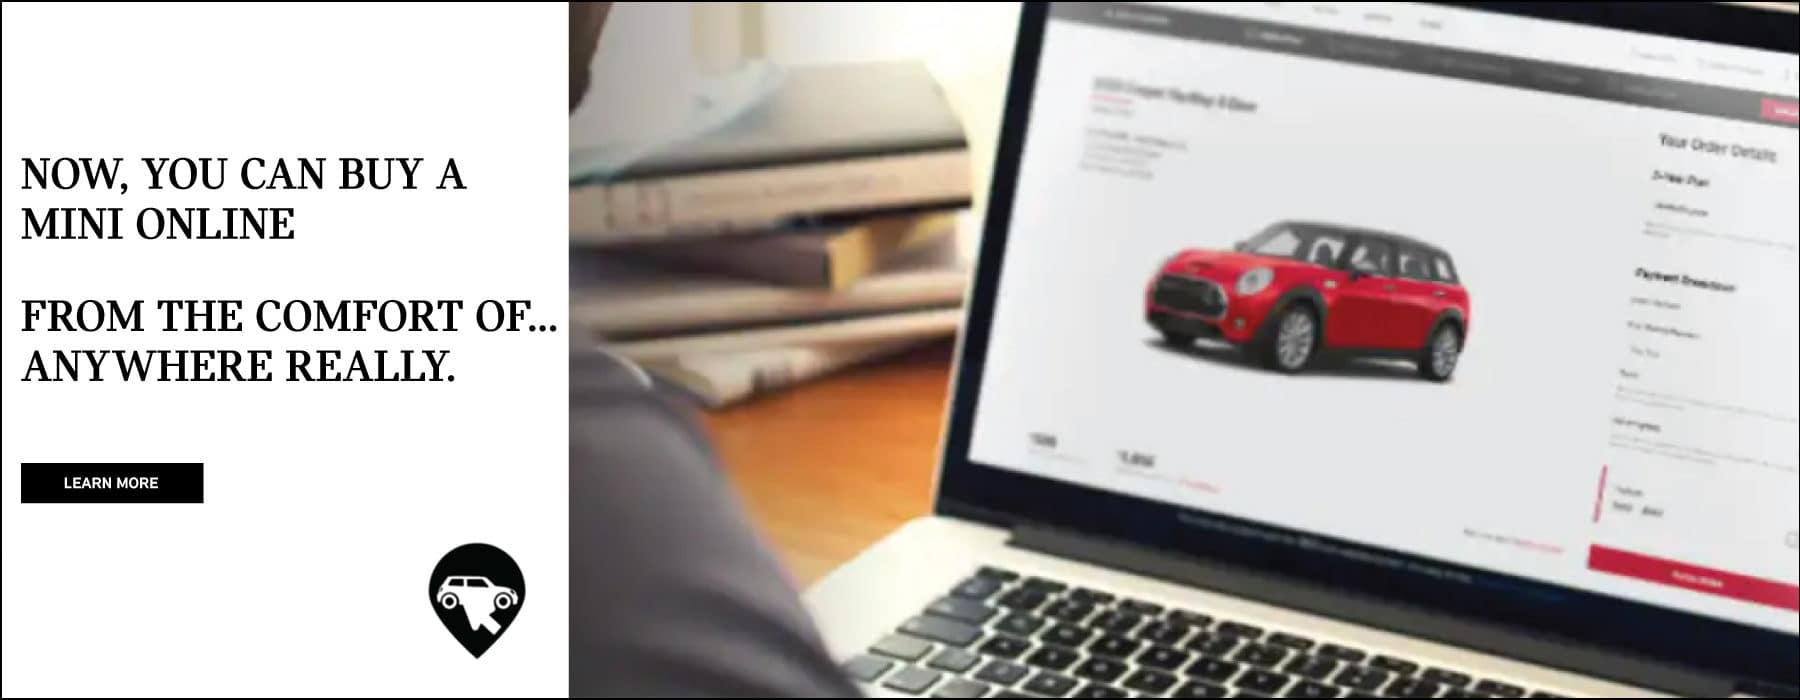 Now, you can buy a MINI online from the comfort of anywhere really.